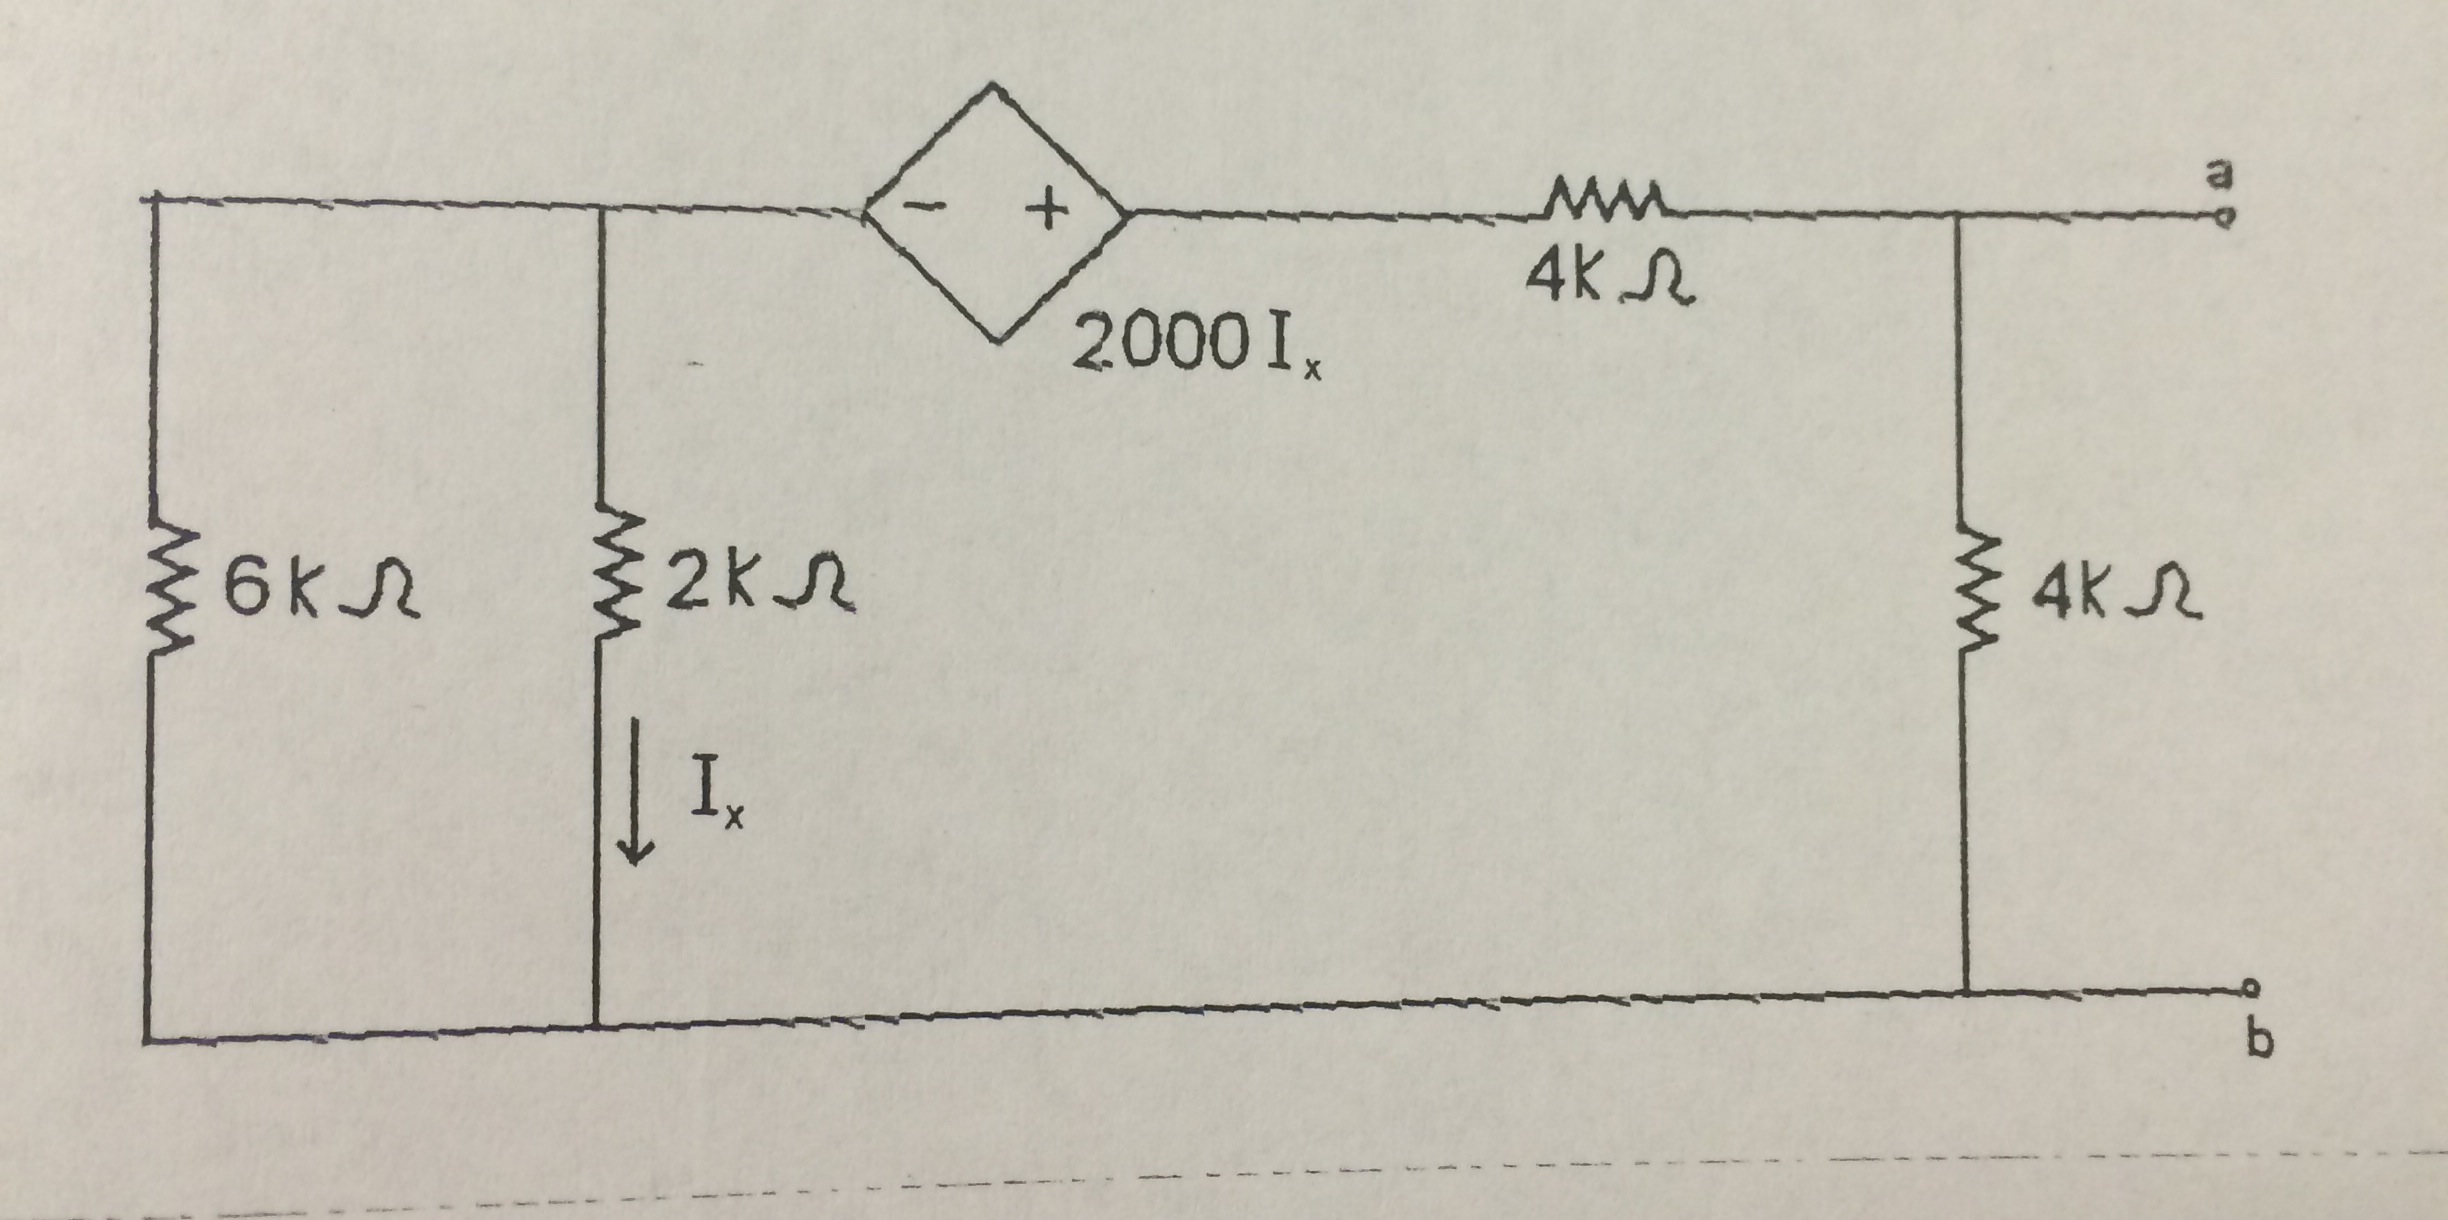 Given the network shown below, determine and draw